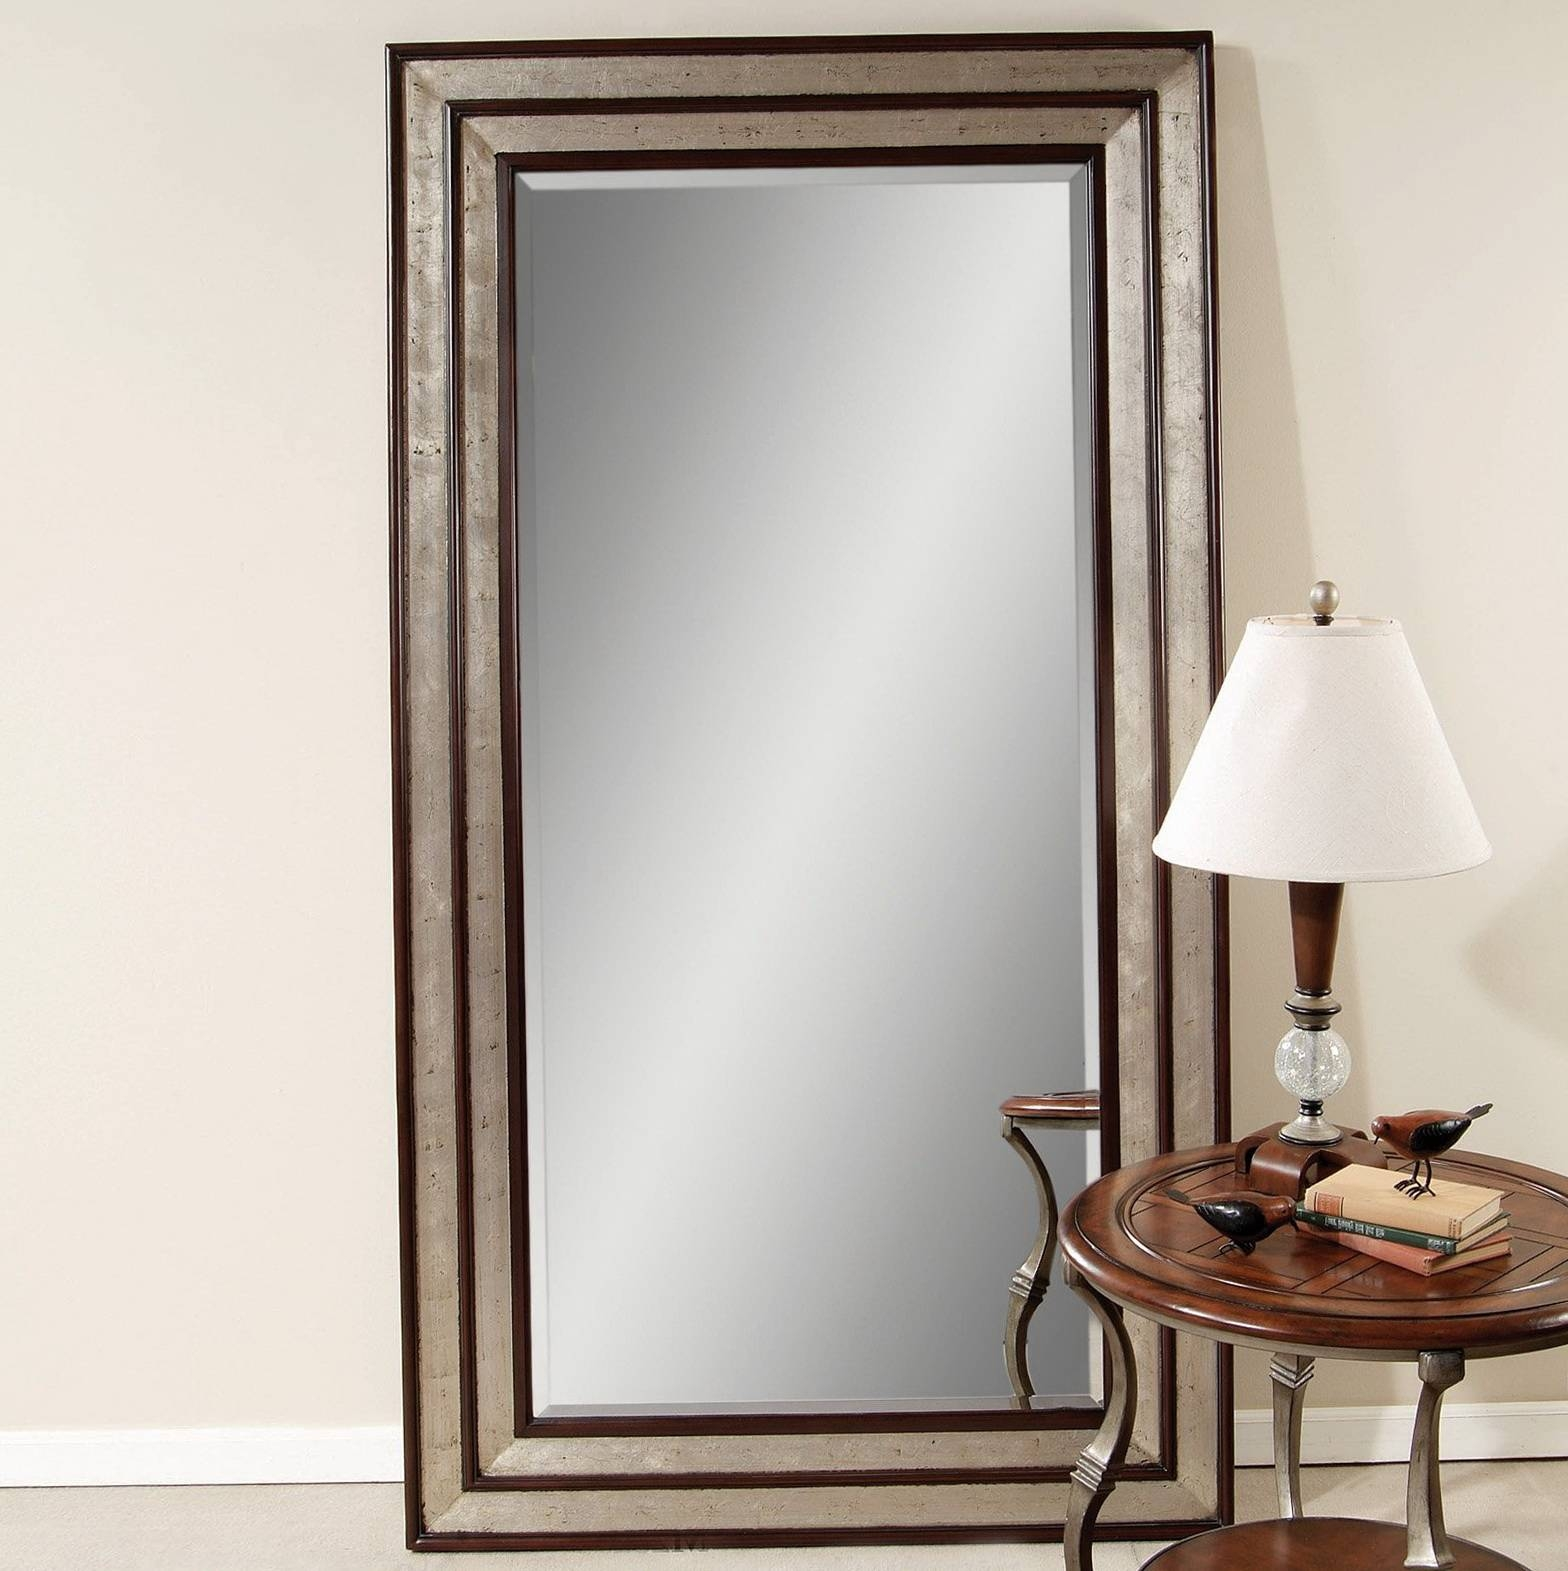 Large Mirrors For Cheap 48 Stunning Decor With Lovely Ideas Large throughout Huge Mirrors For Cheap (Image 21 of 25)